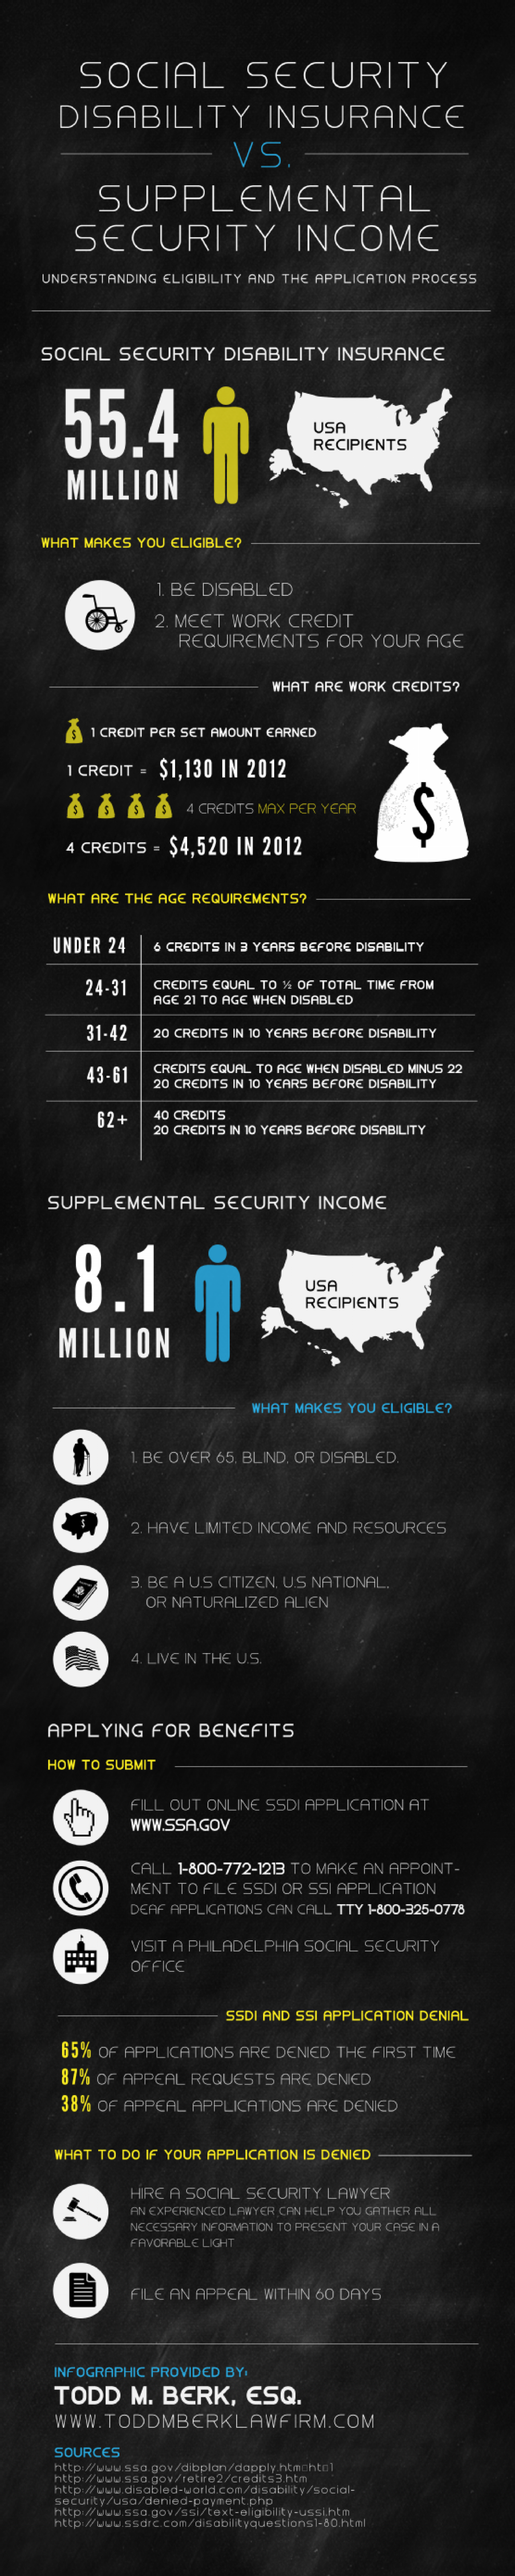 Social Security Disability Insurance vs. Supplemental Security Income  Infographic